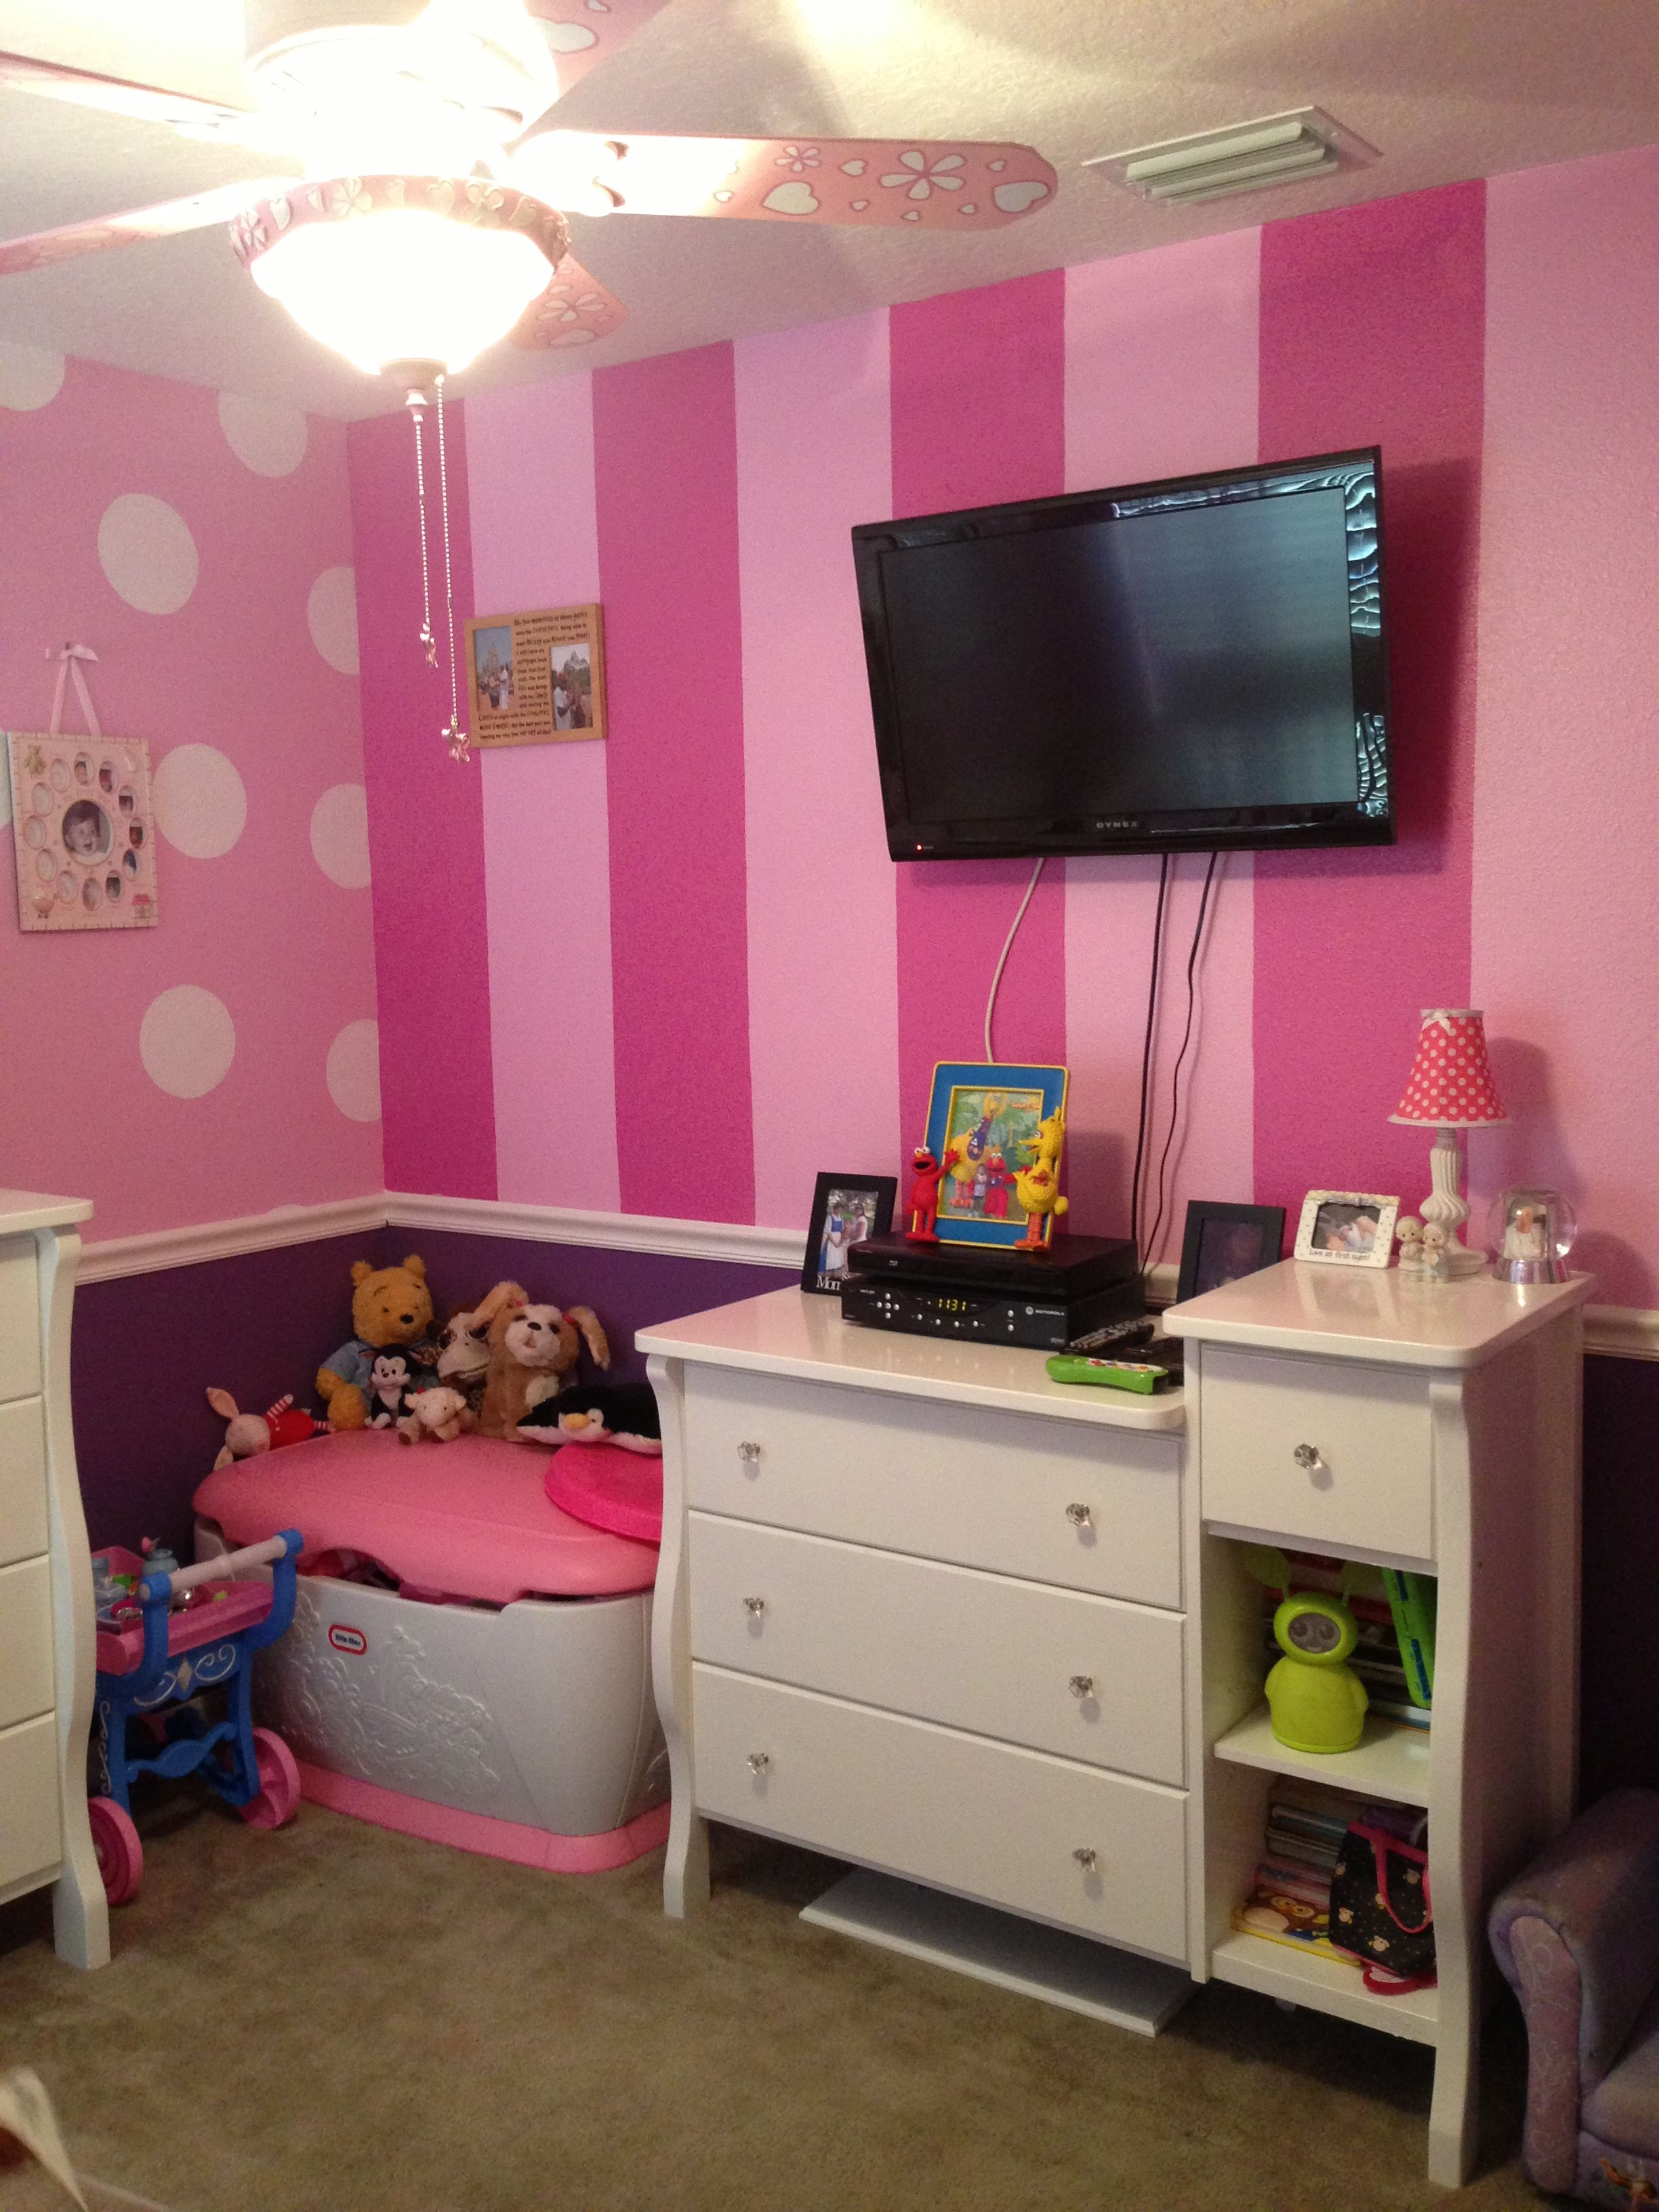 Other striped wall in Minnie room this is what I want to do but